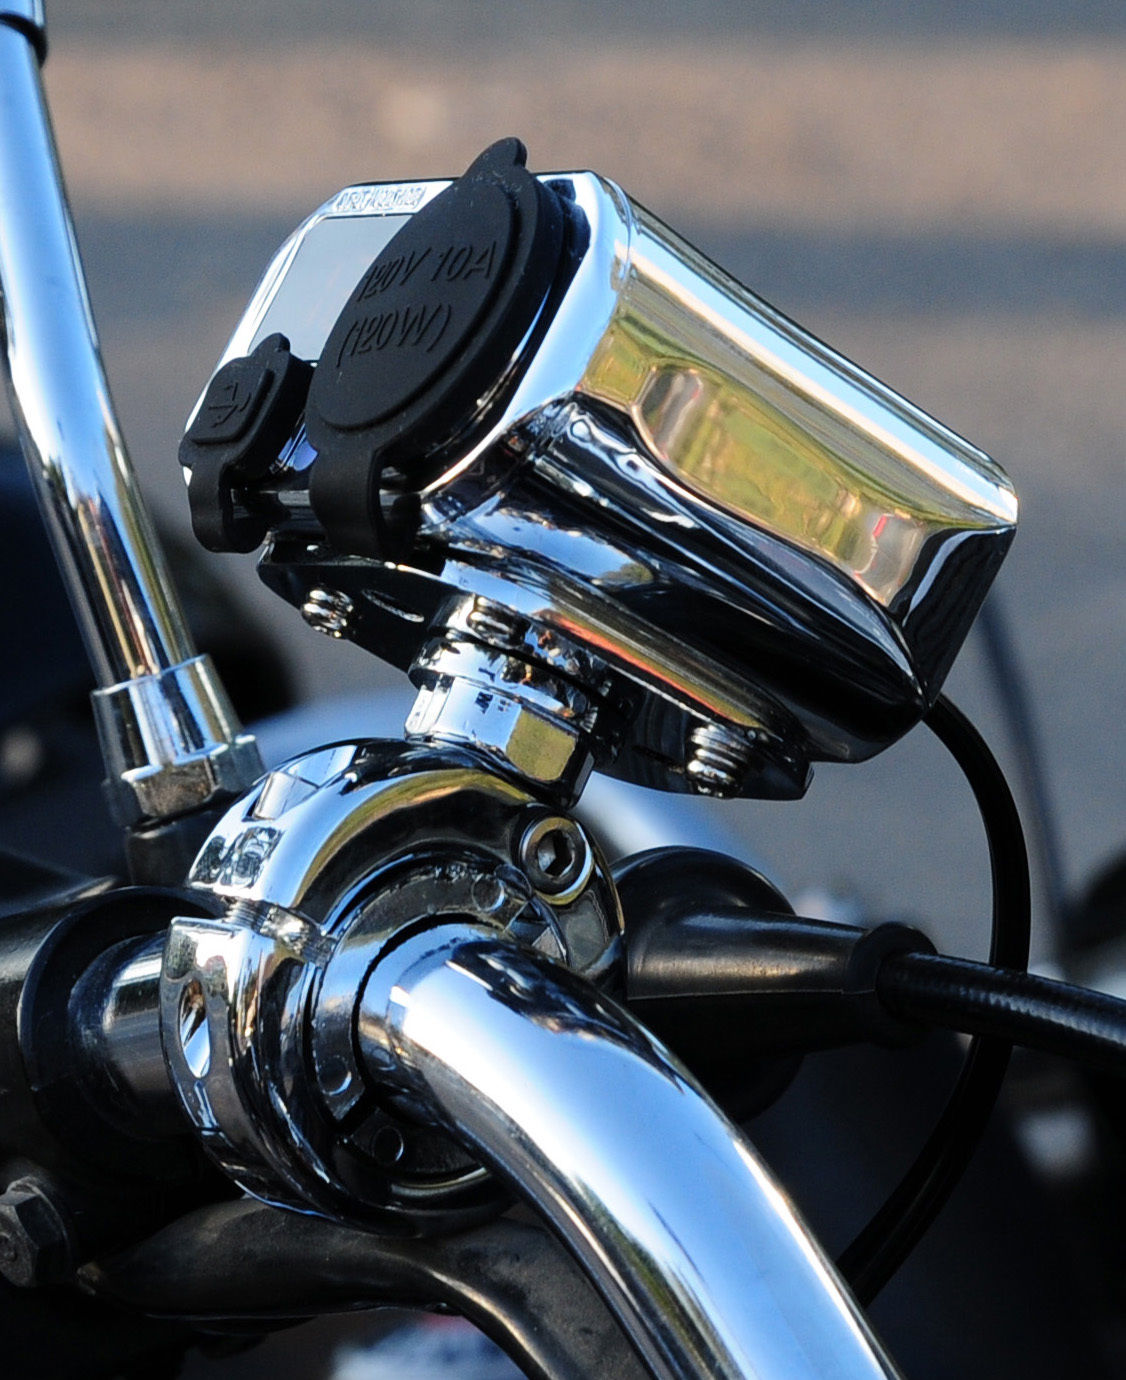 Meancycles Waterproof Motorcycle 3 In 1 Electronic Power